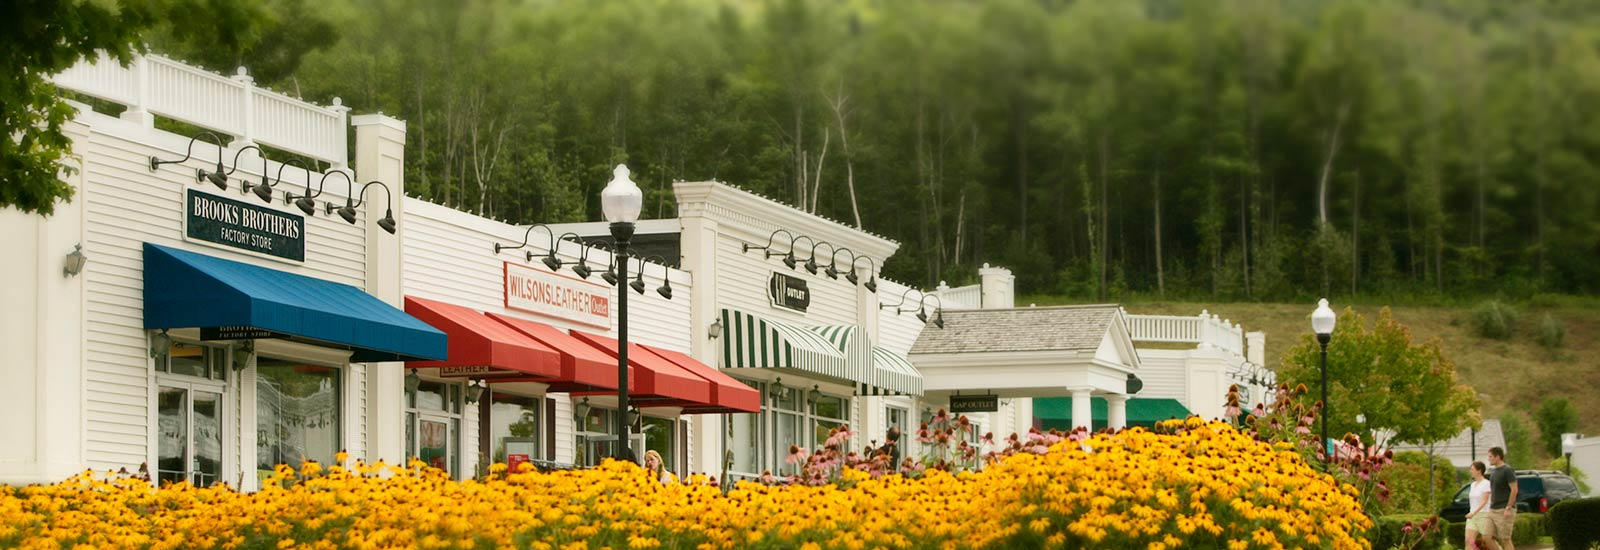 Storefronts and yellow flowers